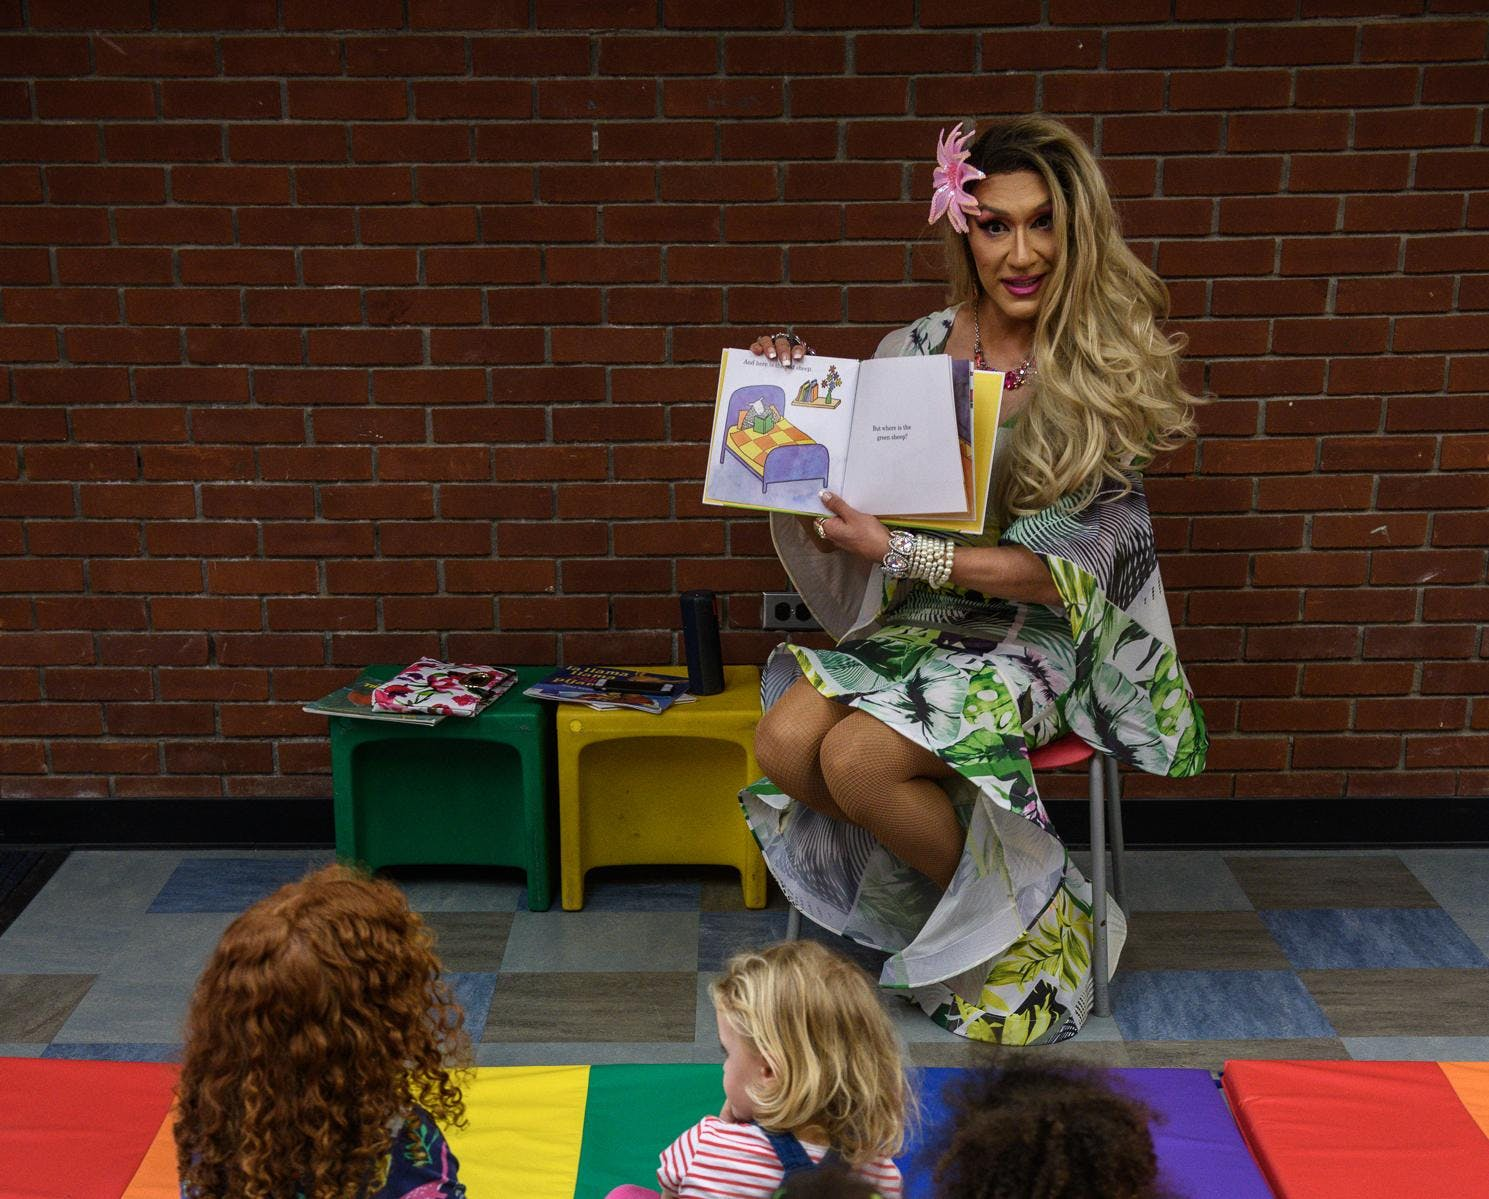 Drag Queen Story Hour with Lola Lemon